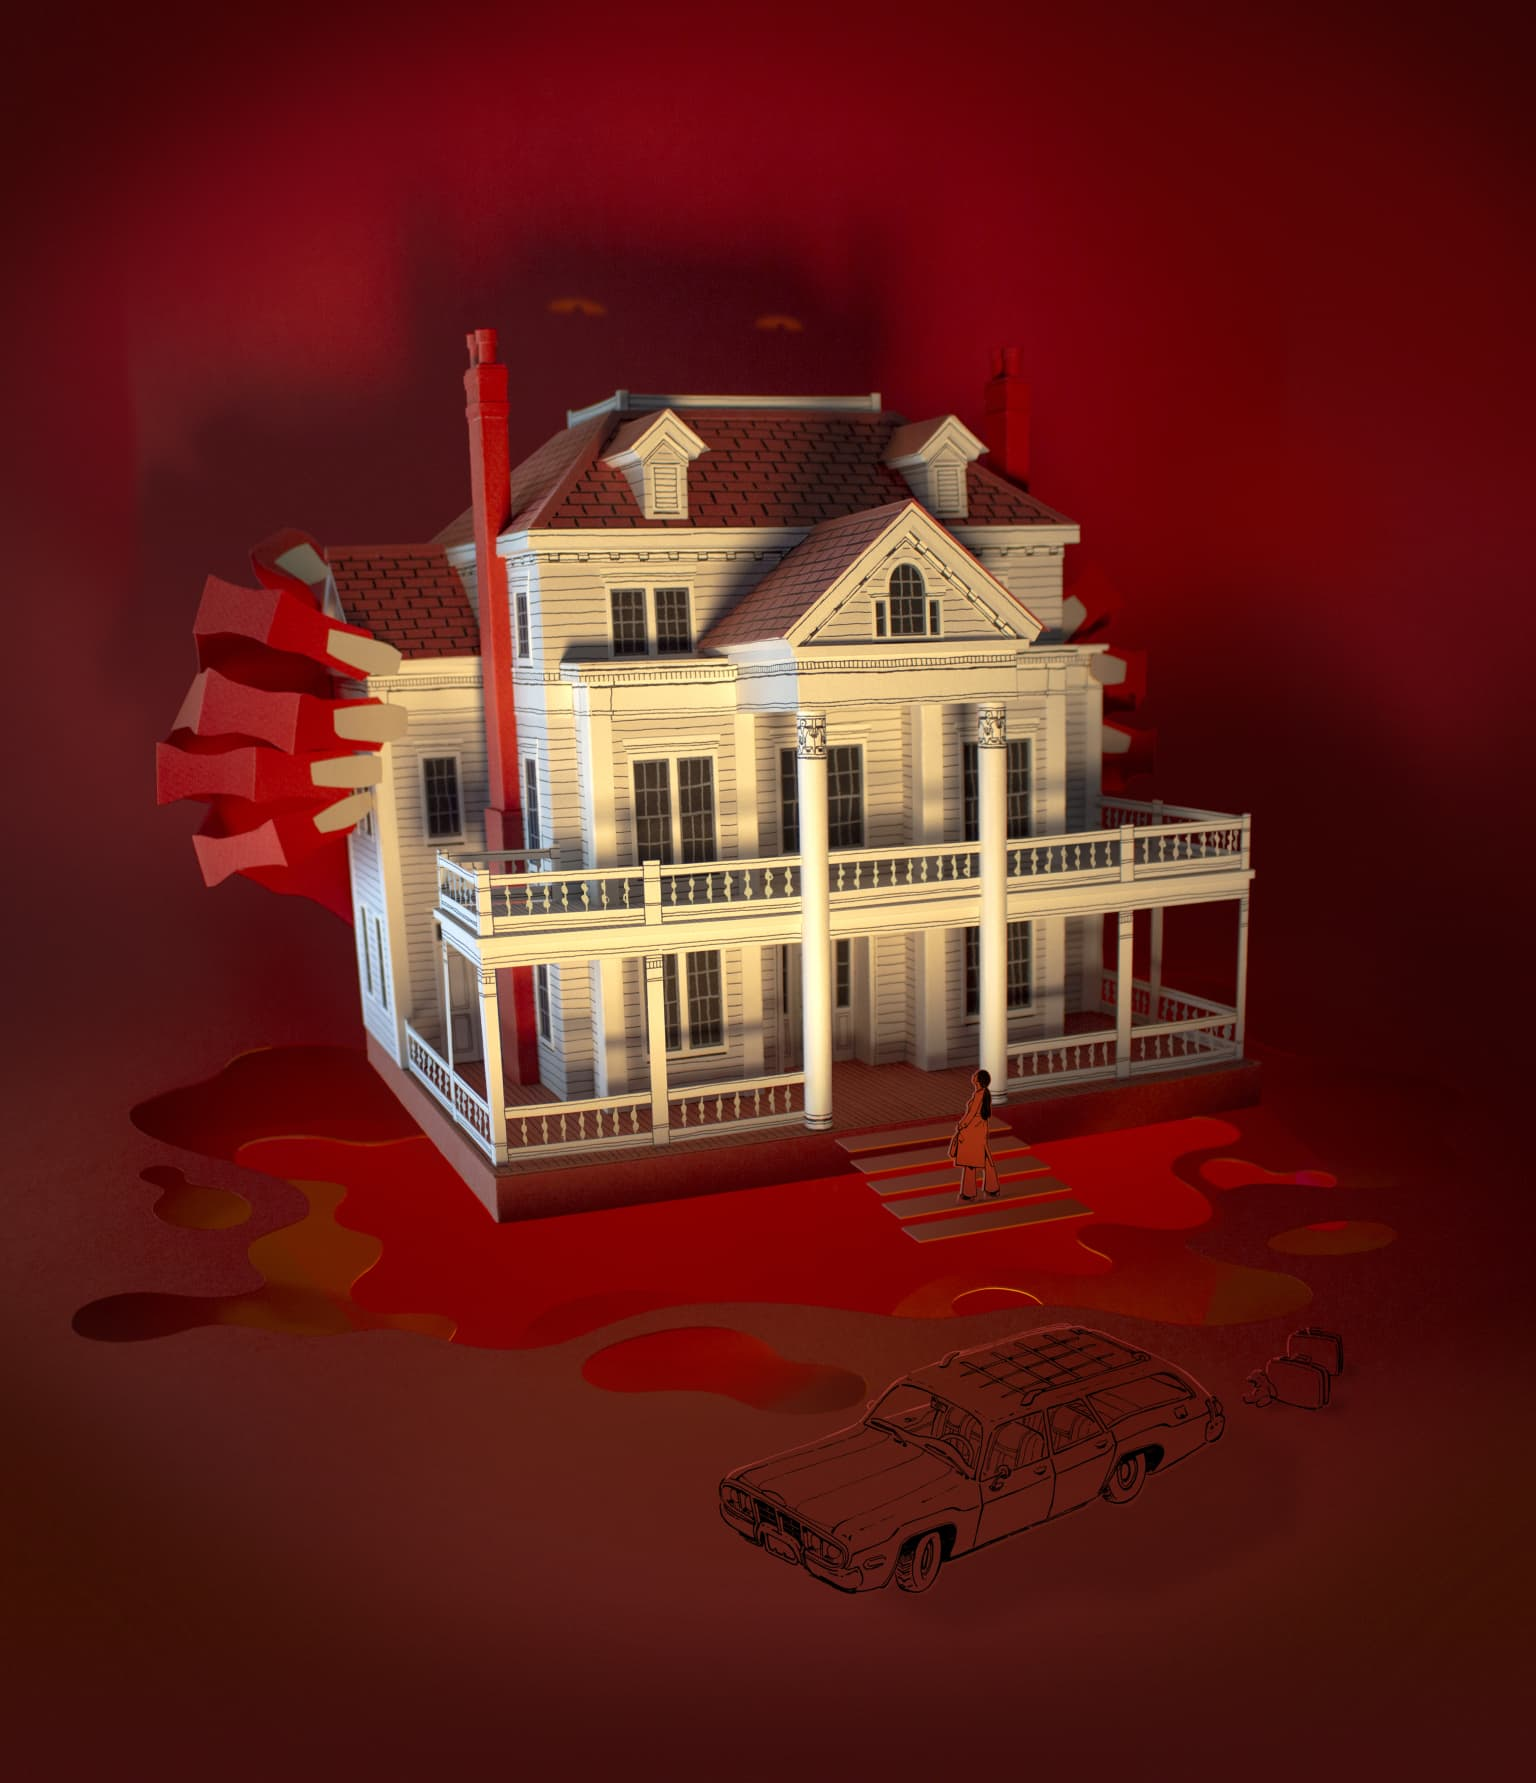 Haunted House Illustrations